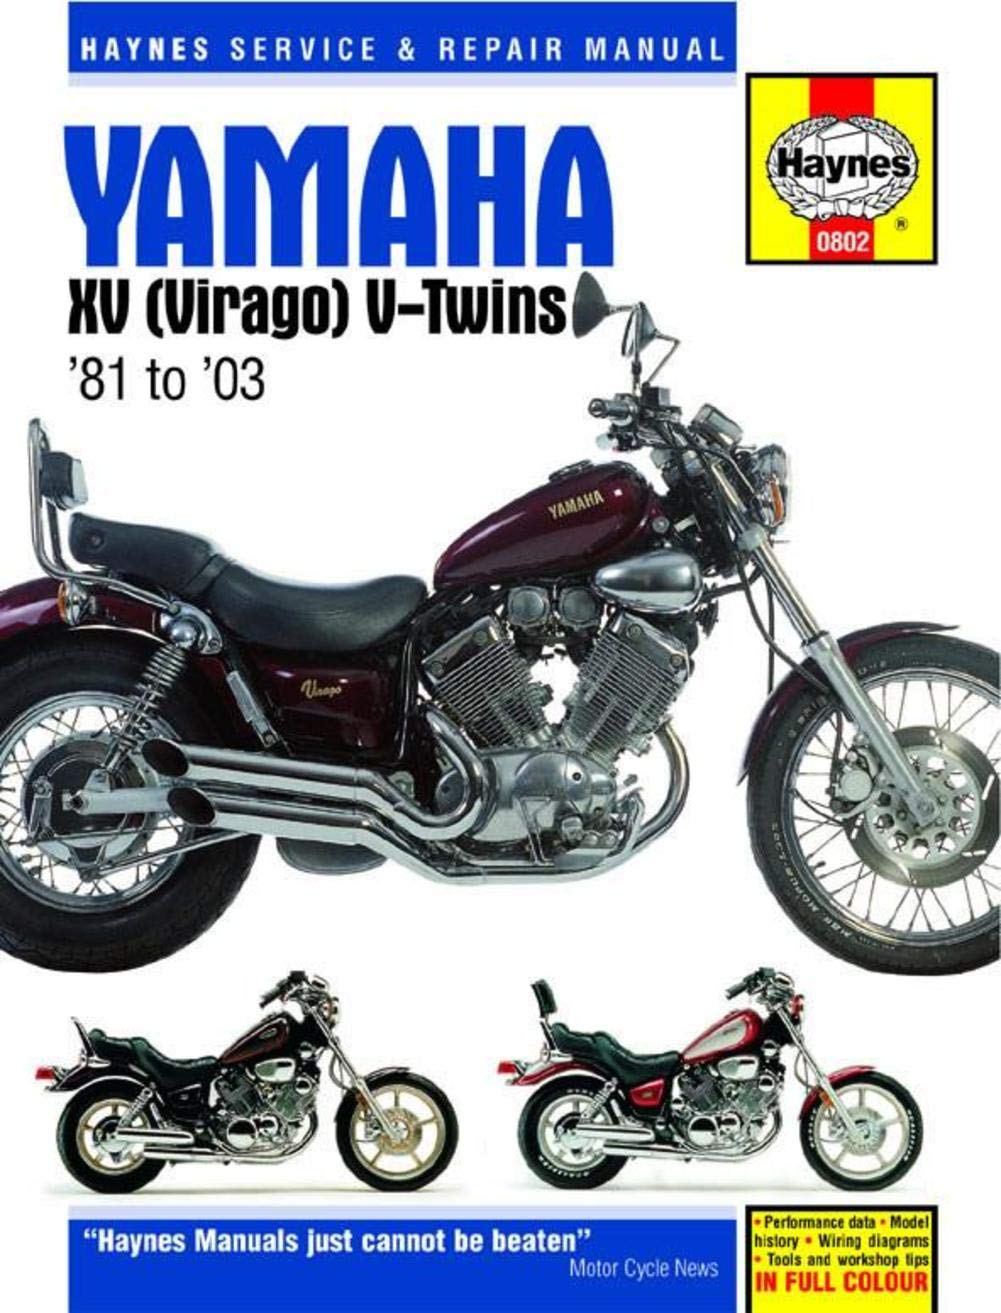 amazon com: haynes repair manuals 802 yamaha xv virago v-twin 81-03:  automotive